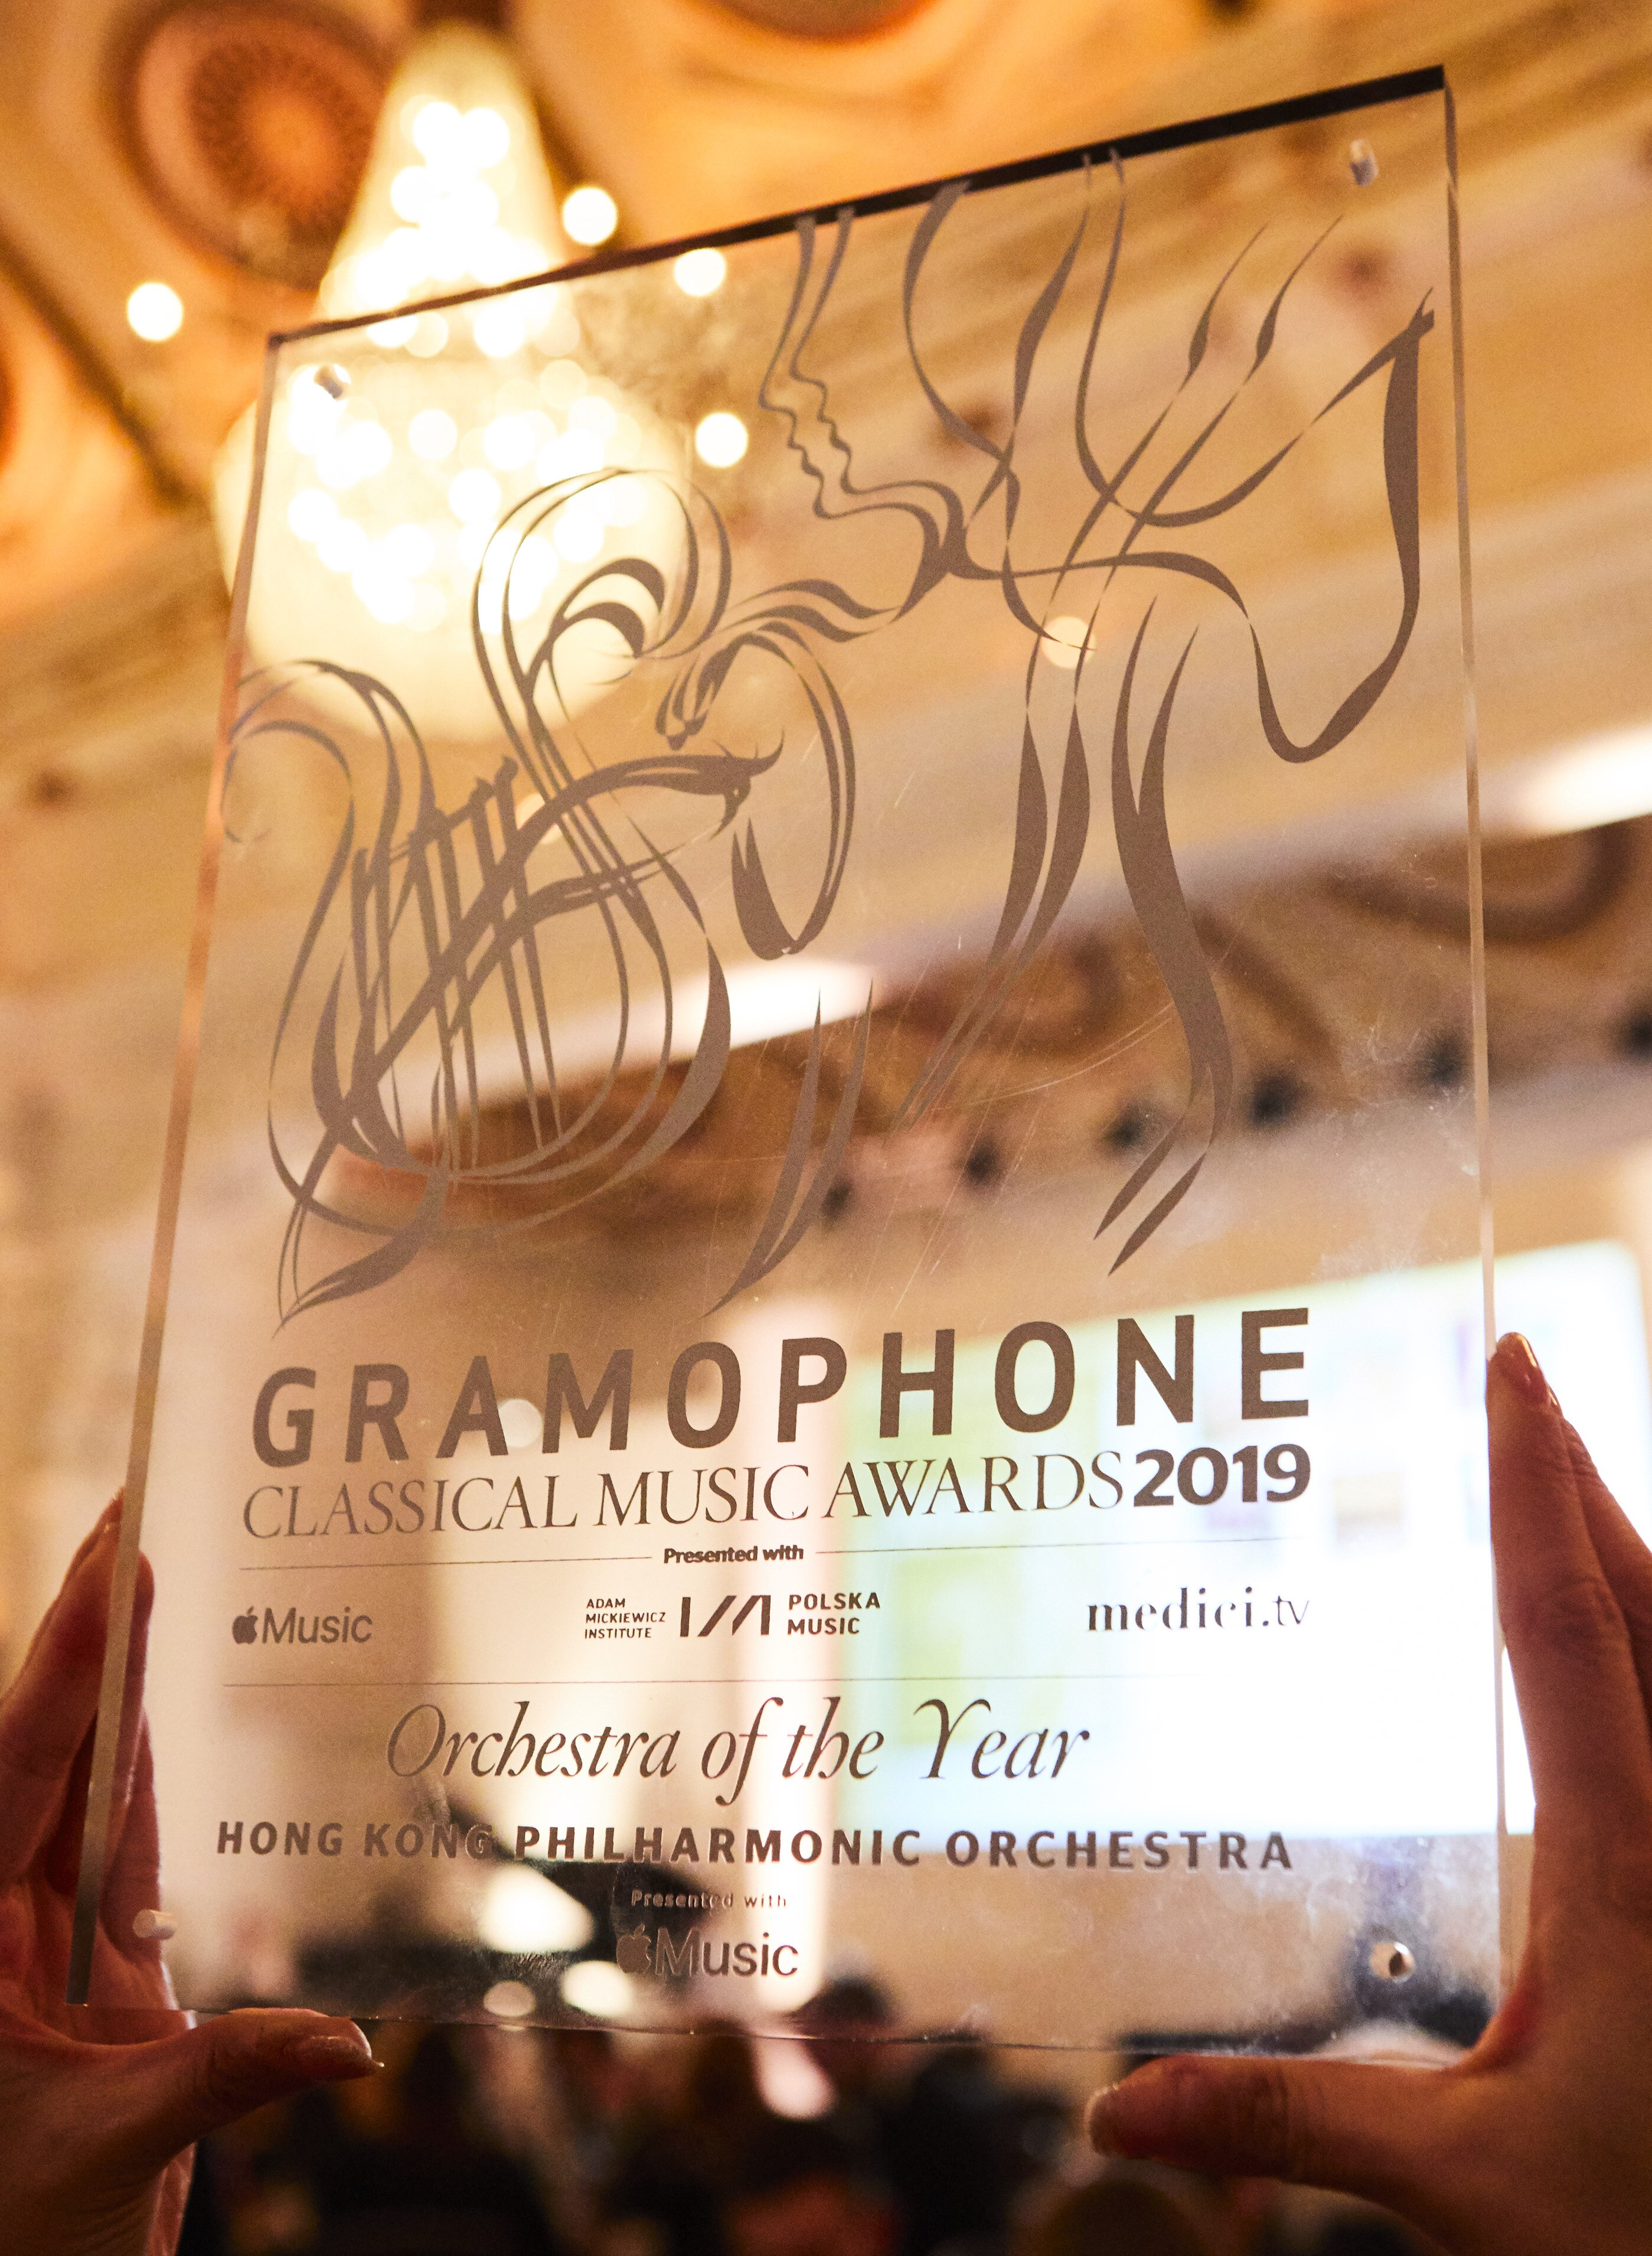 2019 Gramophone Classical Music Awards